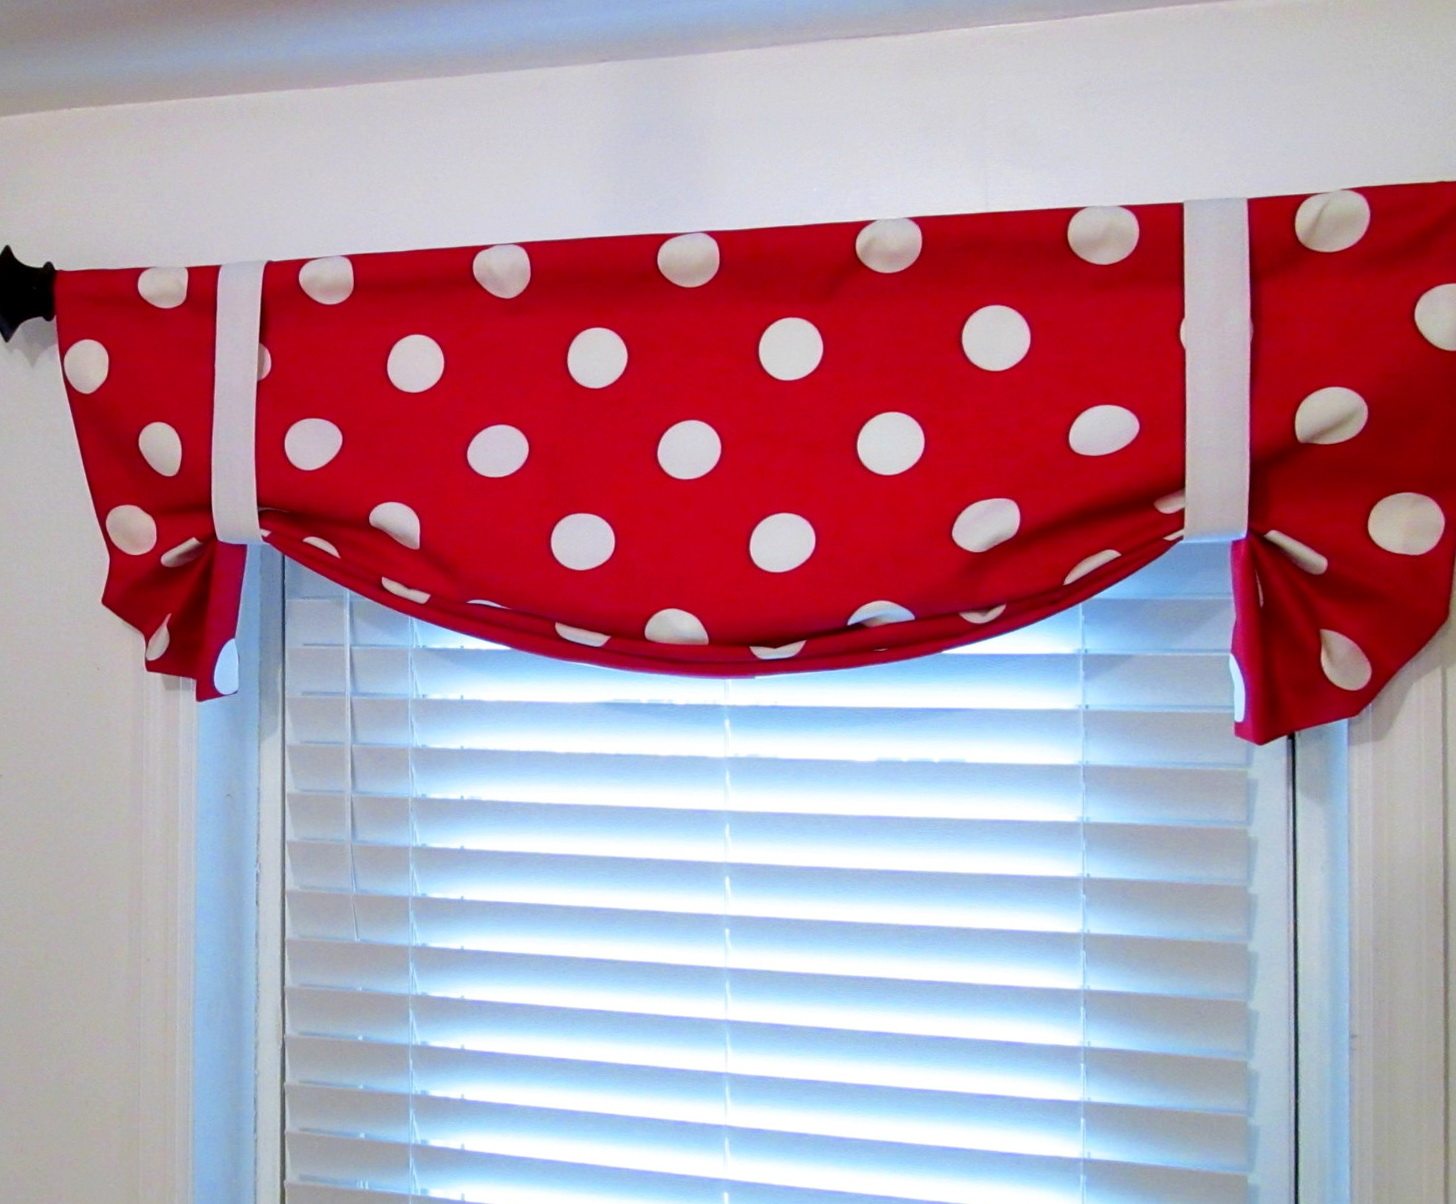 Red and white polka dot curtains home design ideas for Red and white polka dot decorations